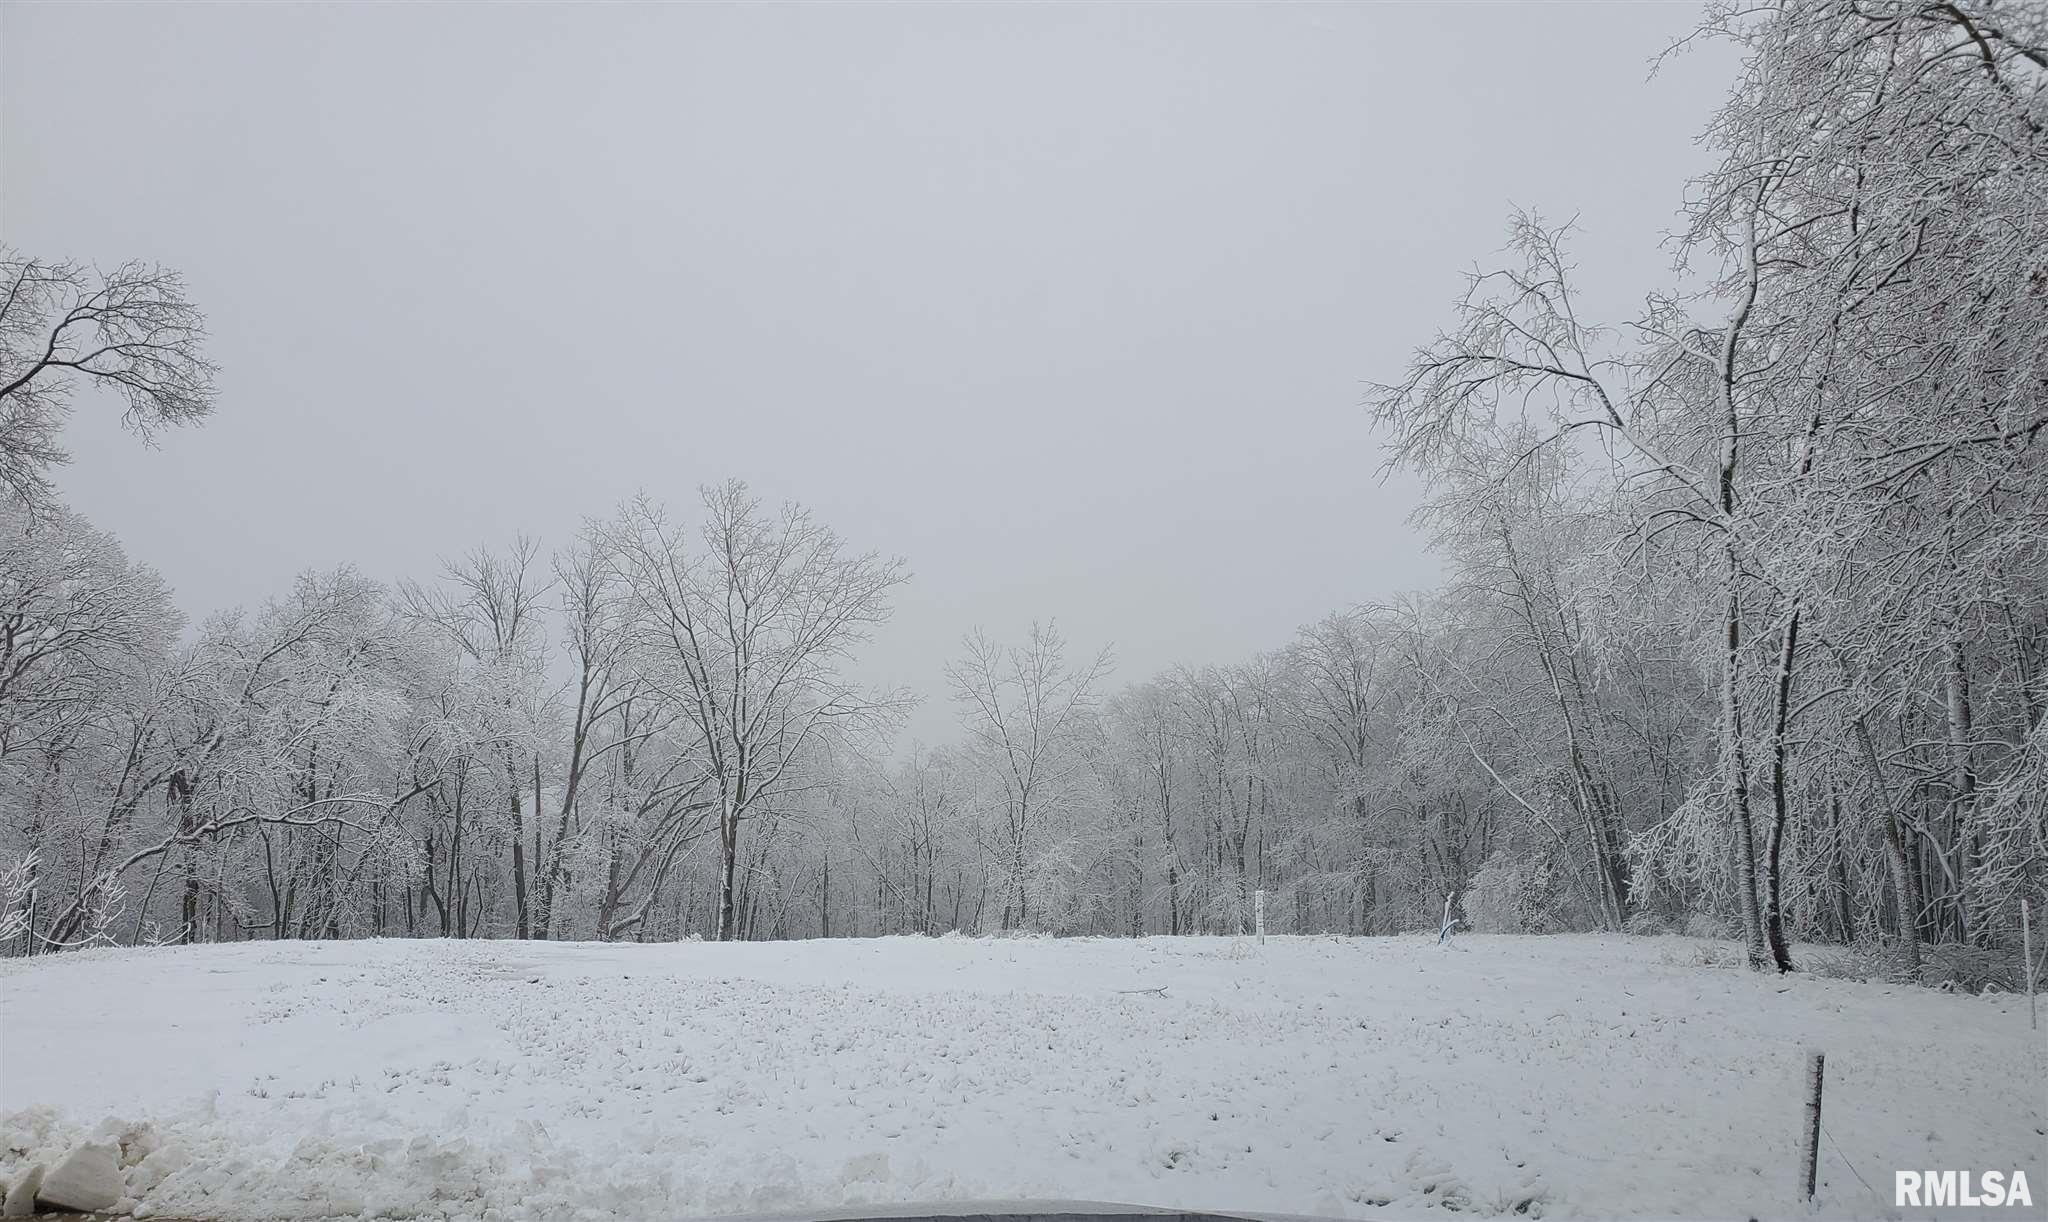 124 ROSEMARY Property Photo - Germantown Hills, IL real estate listing